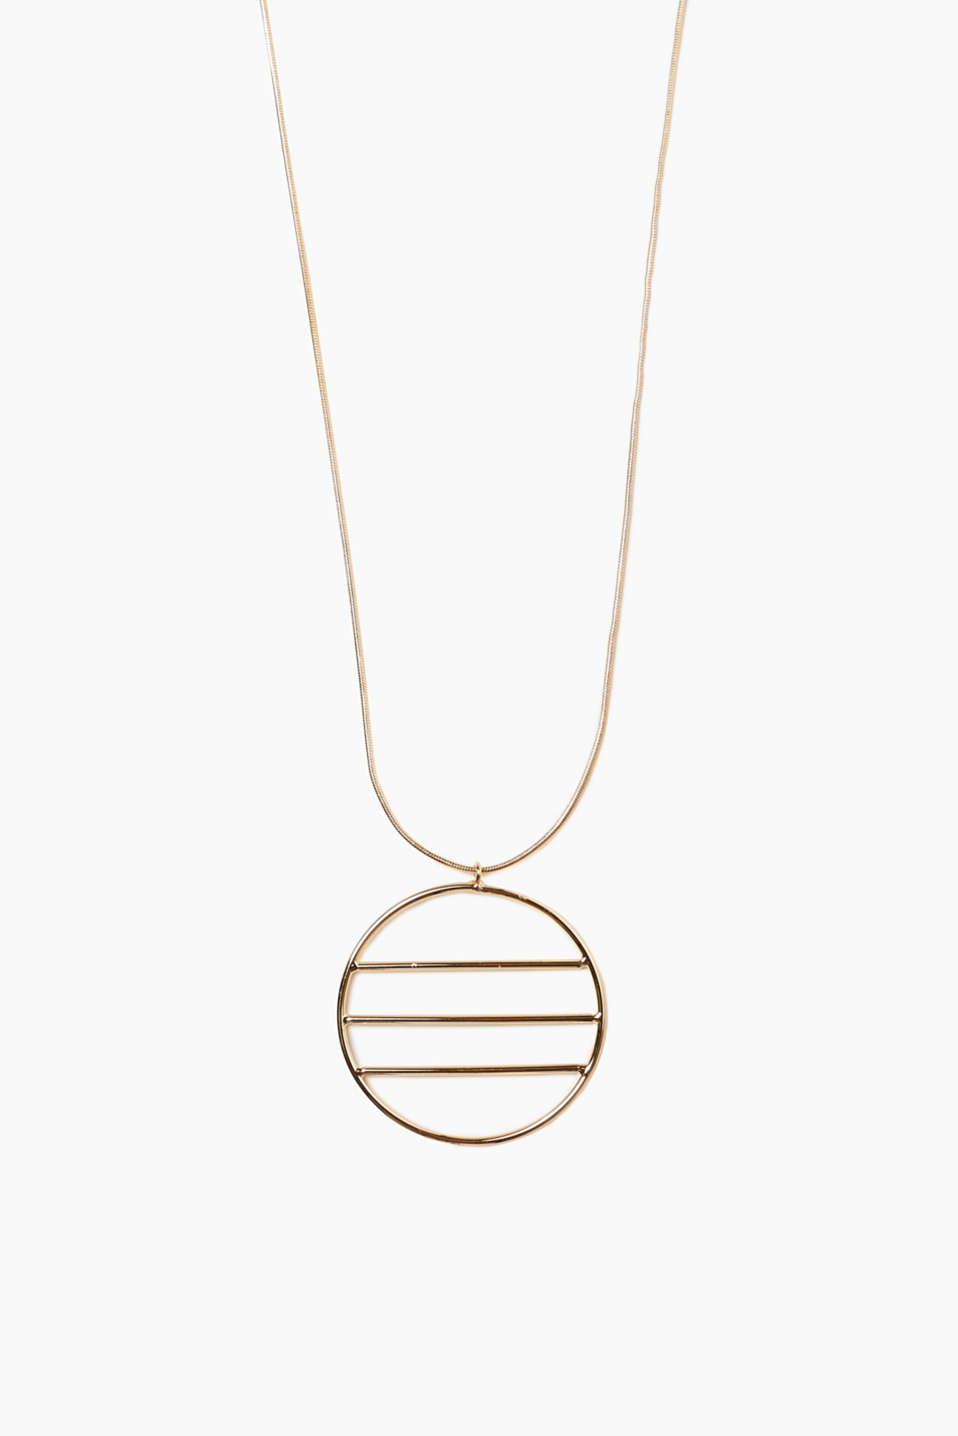 We love minimalist designs with a graphic twist! This necklace is a highlight thanks to its pendant.